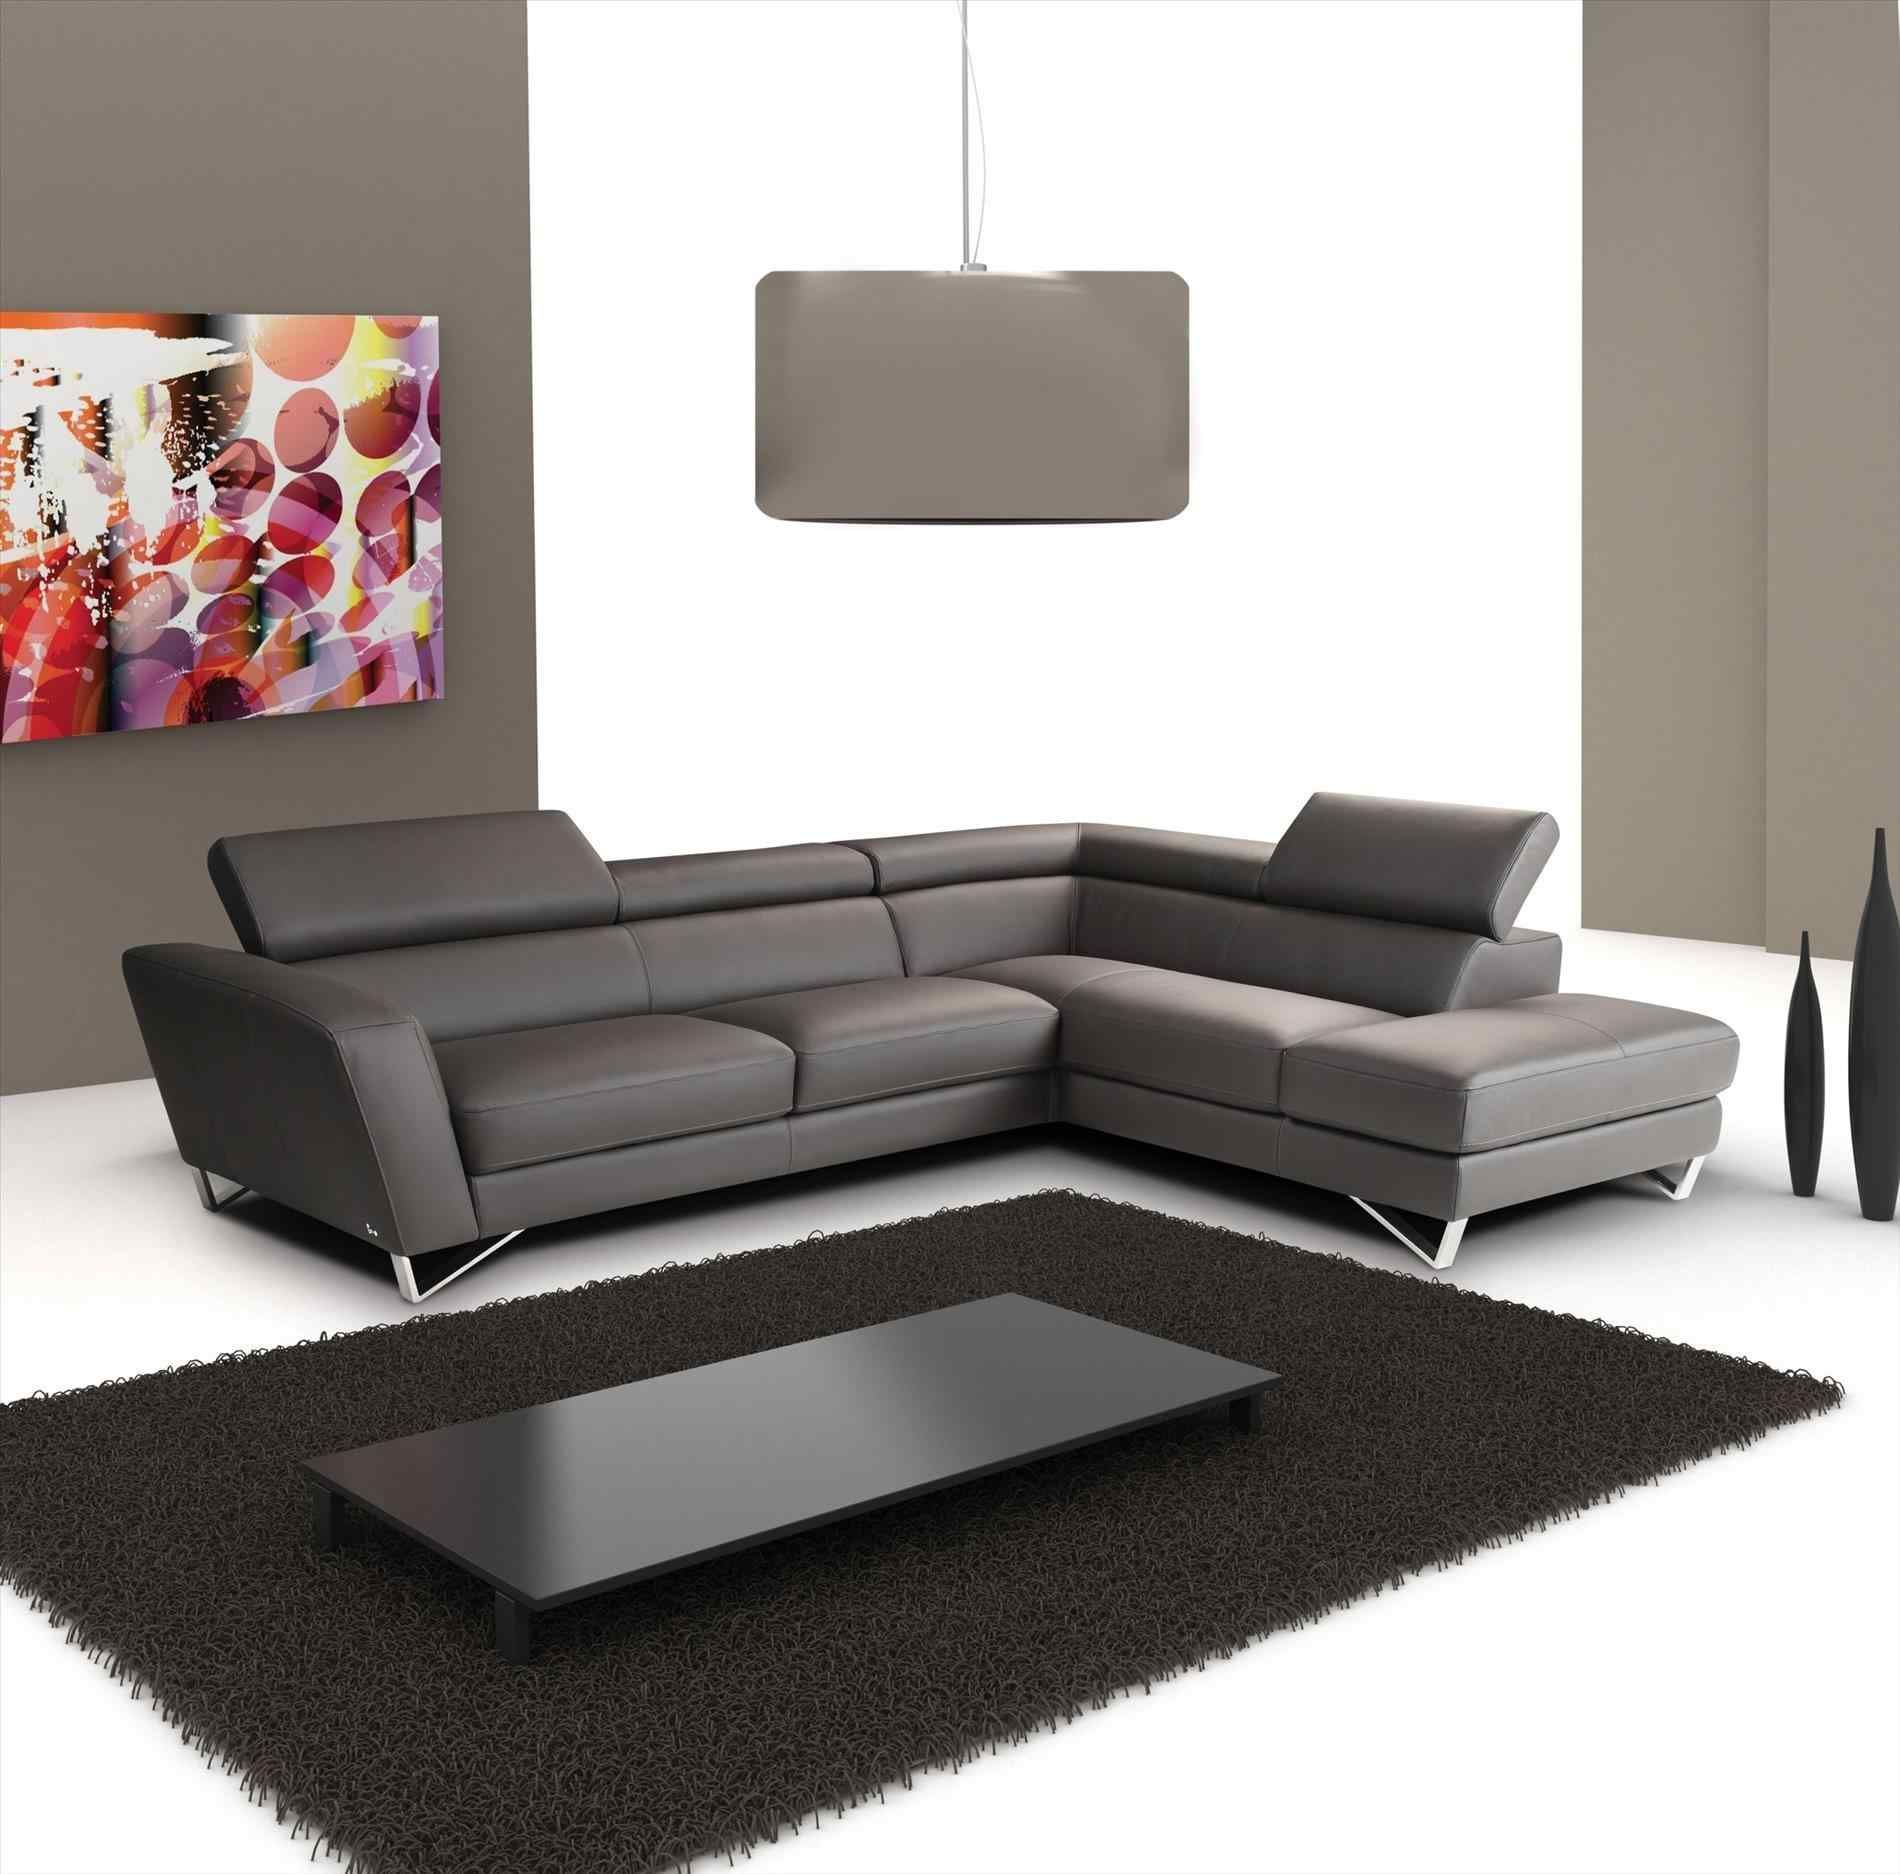 Sears Living Room Couches Furniture Tasmania Low Cost Sectional Sofas Cozy Gray Sofa For Sale With Additional Inexpensive